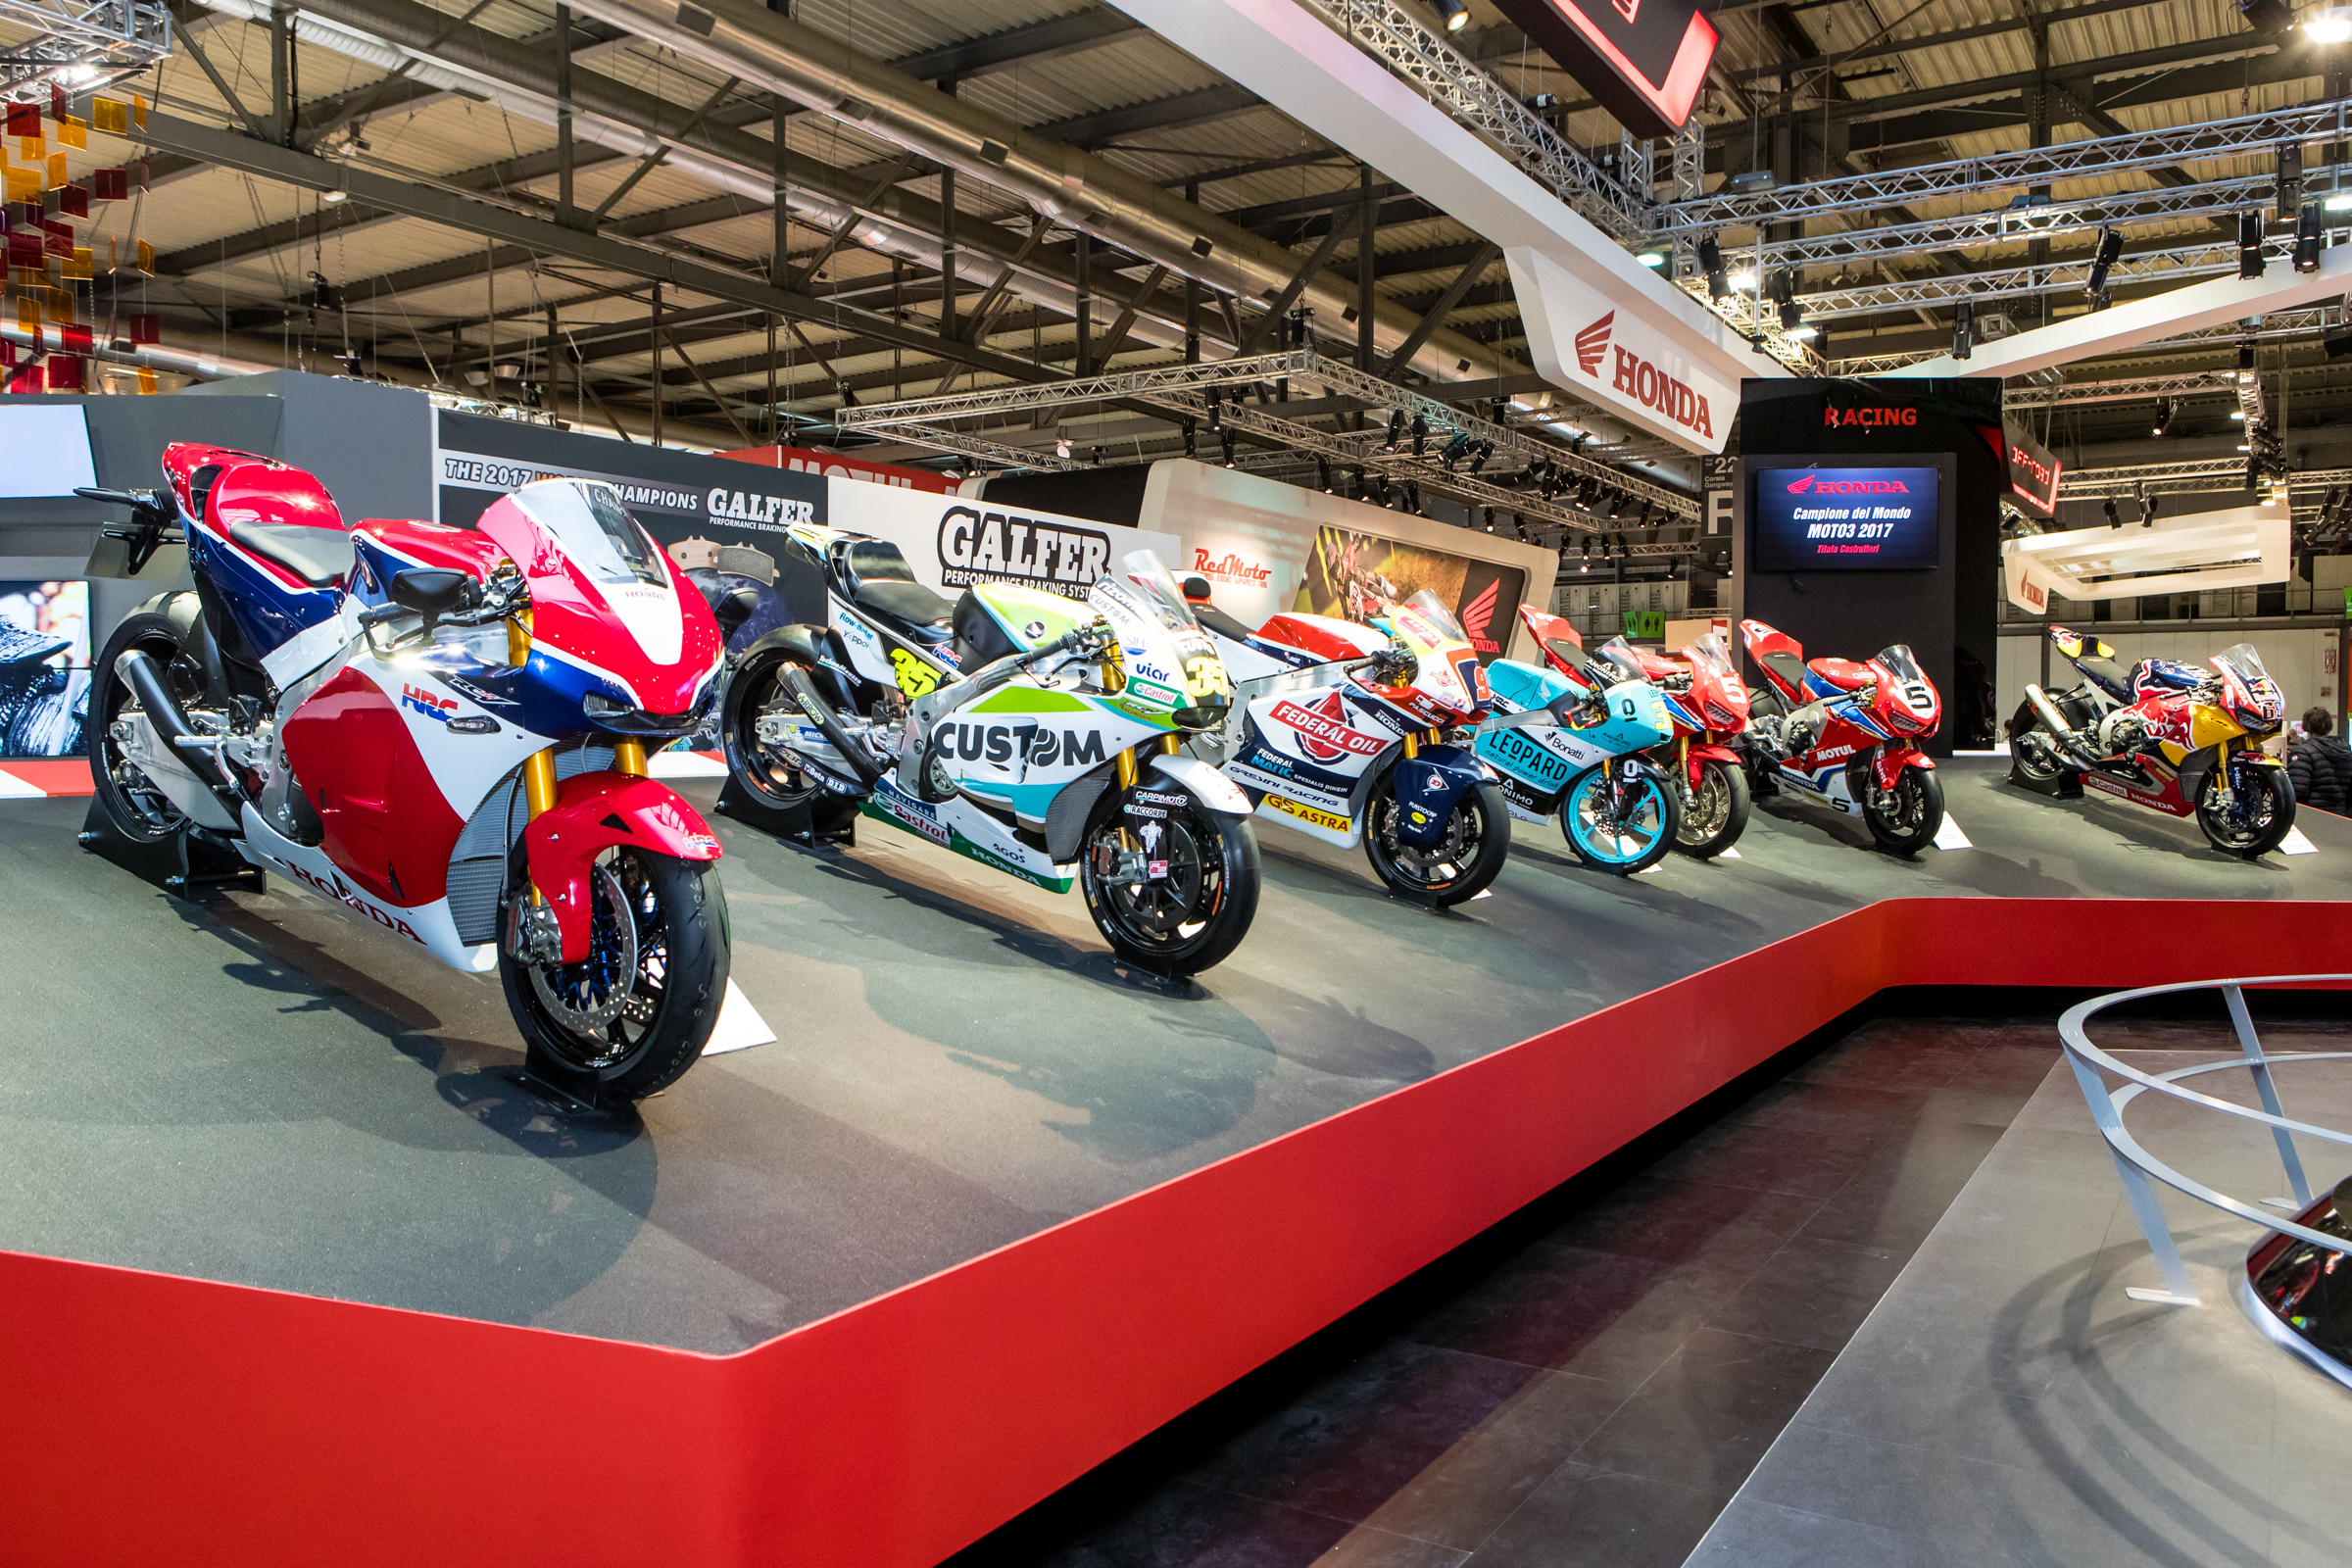 Honda showed off their range of road race machines. From the RC213 limited production bike, a MotoGP race bike, Moto2, Moto3, World Superbike, US Superbike, an Endurance road race bike from Japan and more.